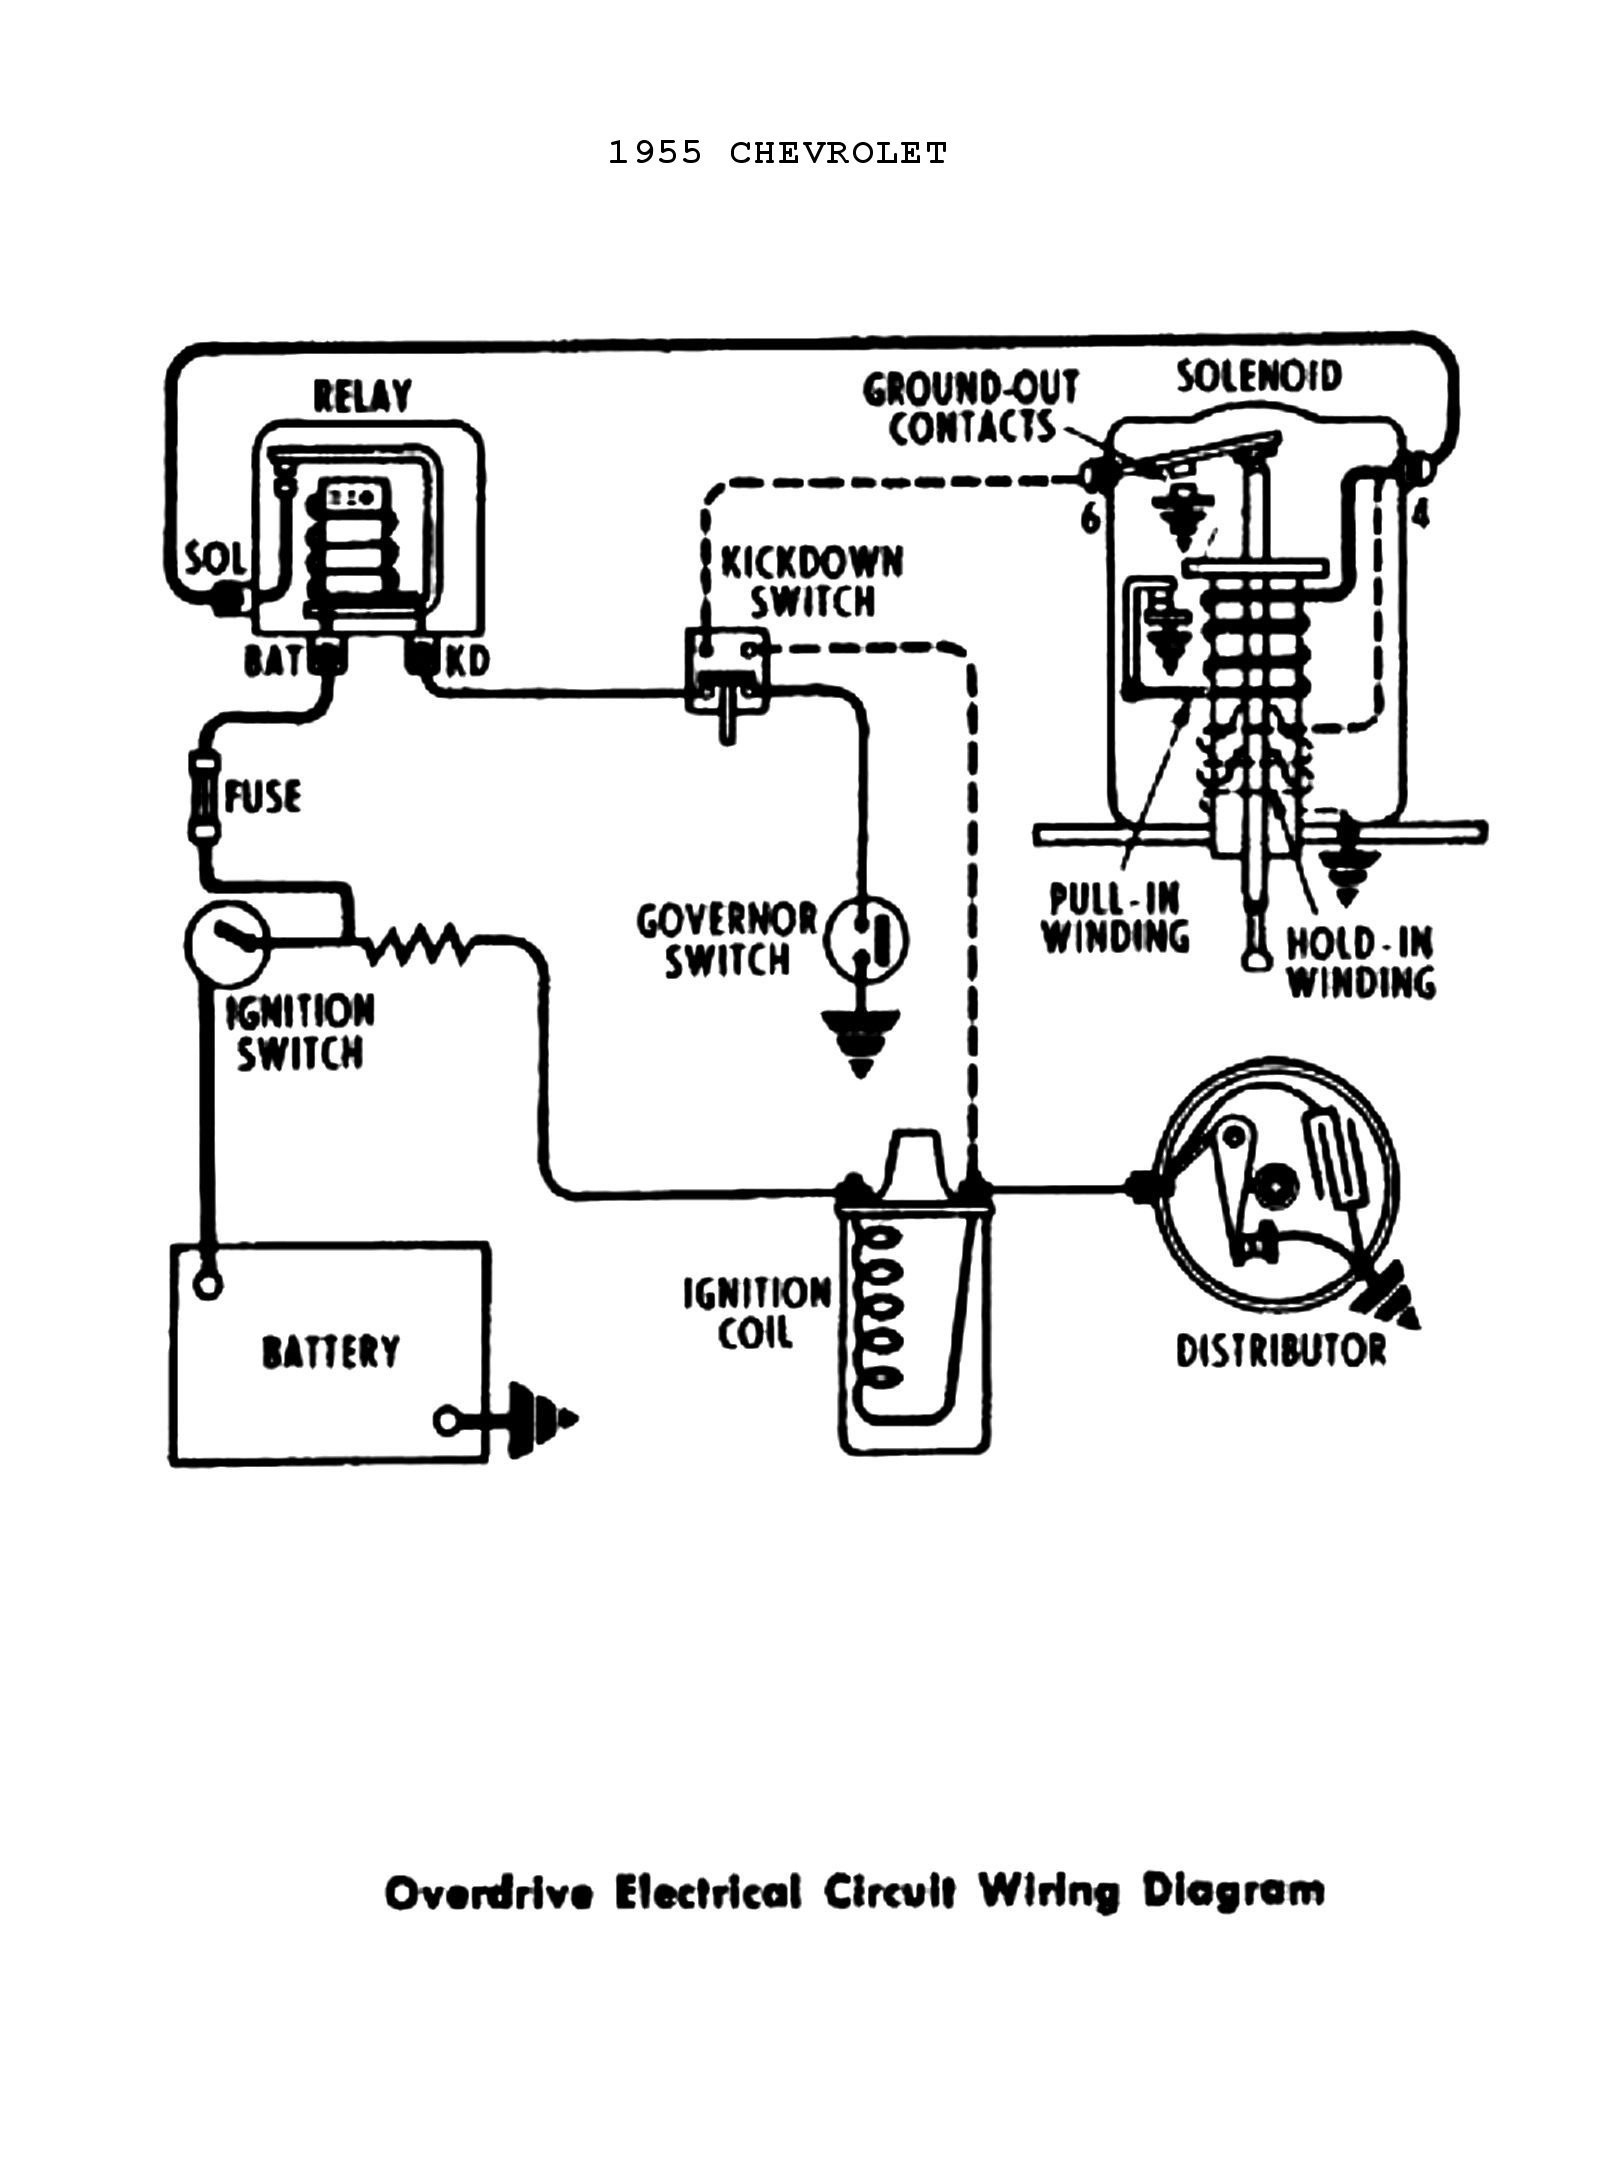 rheostat switch wiring diagram gm body control module wiring diagram | free wiring diagram